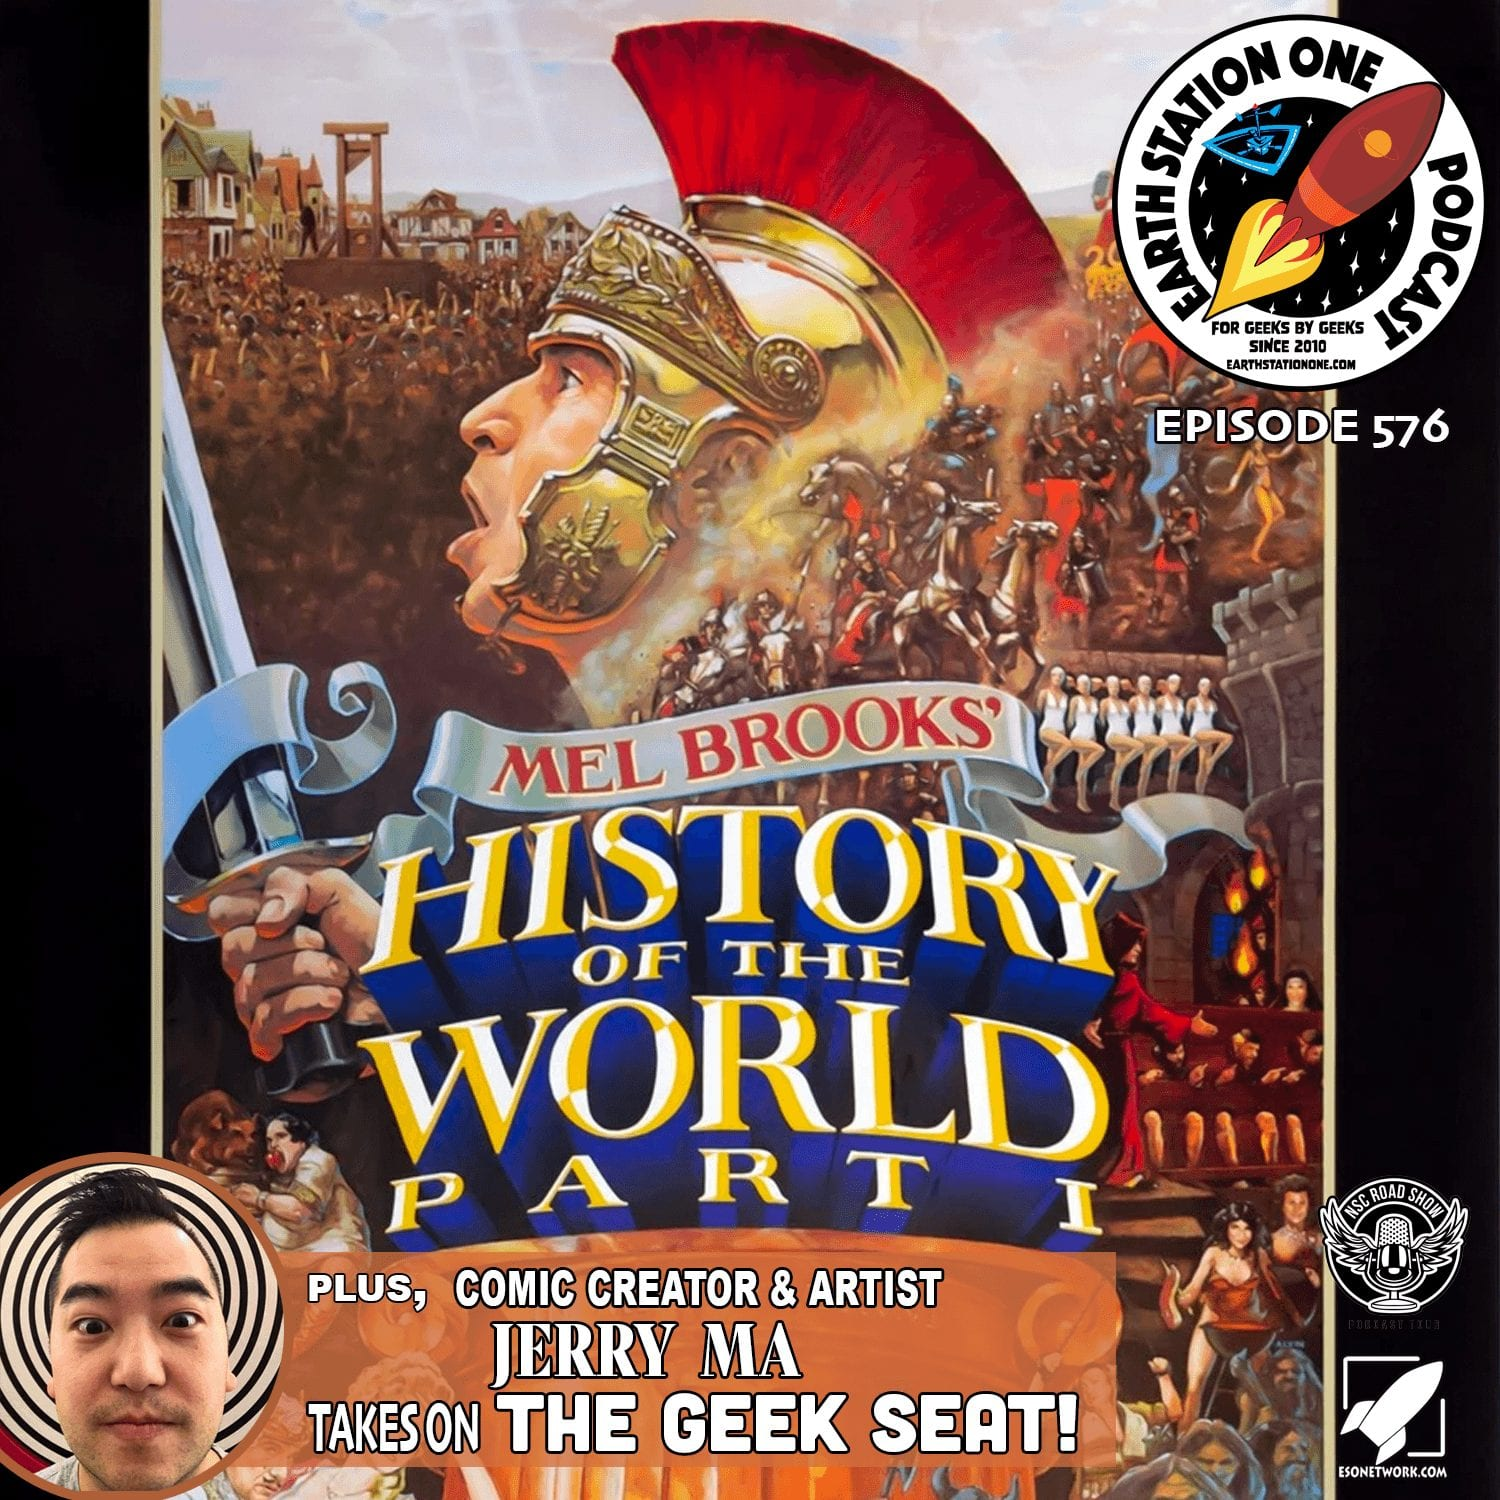 The Earth Station One Podcast Ep 576 - History of World Pt 1